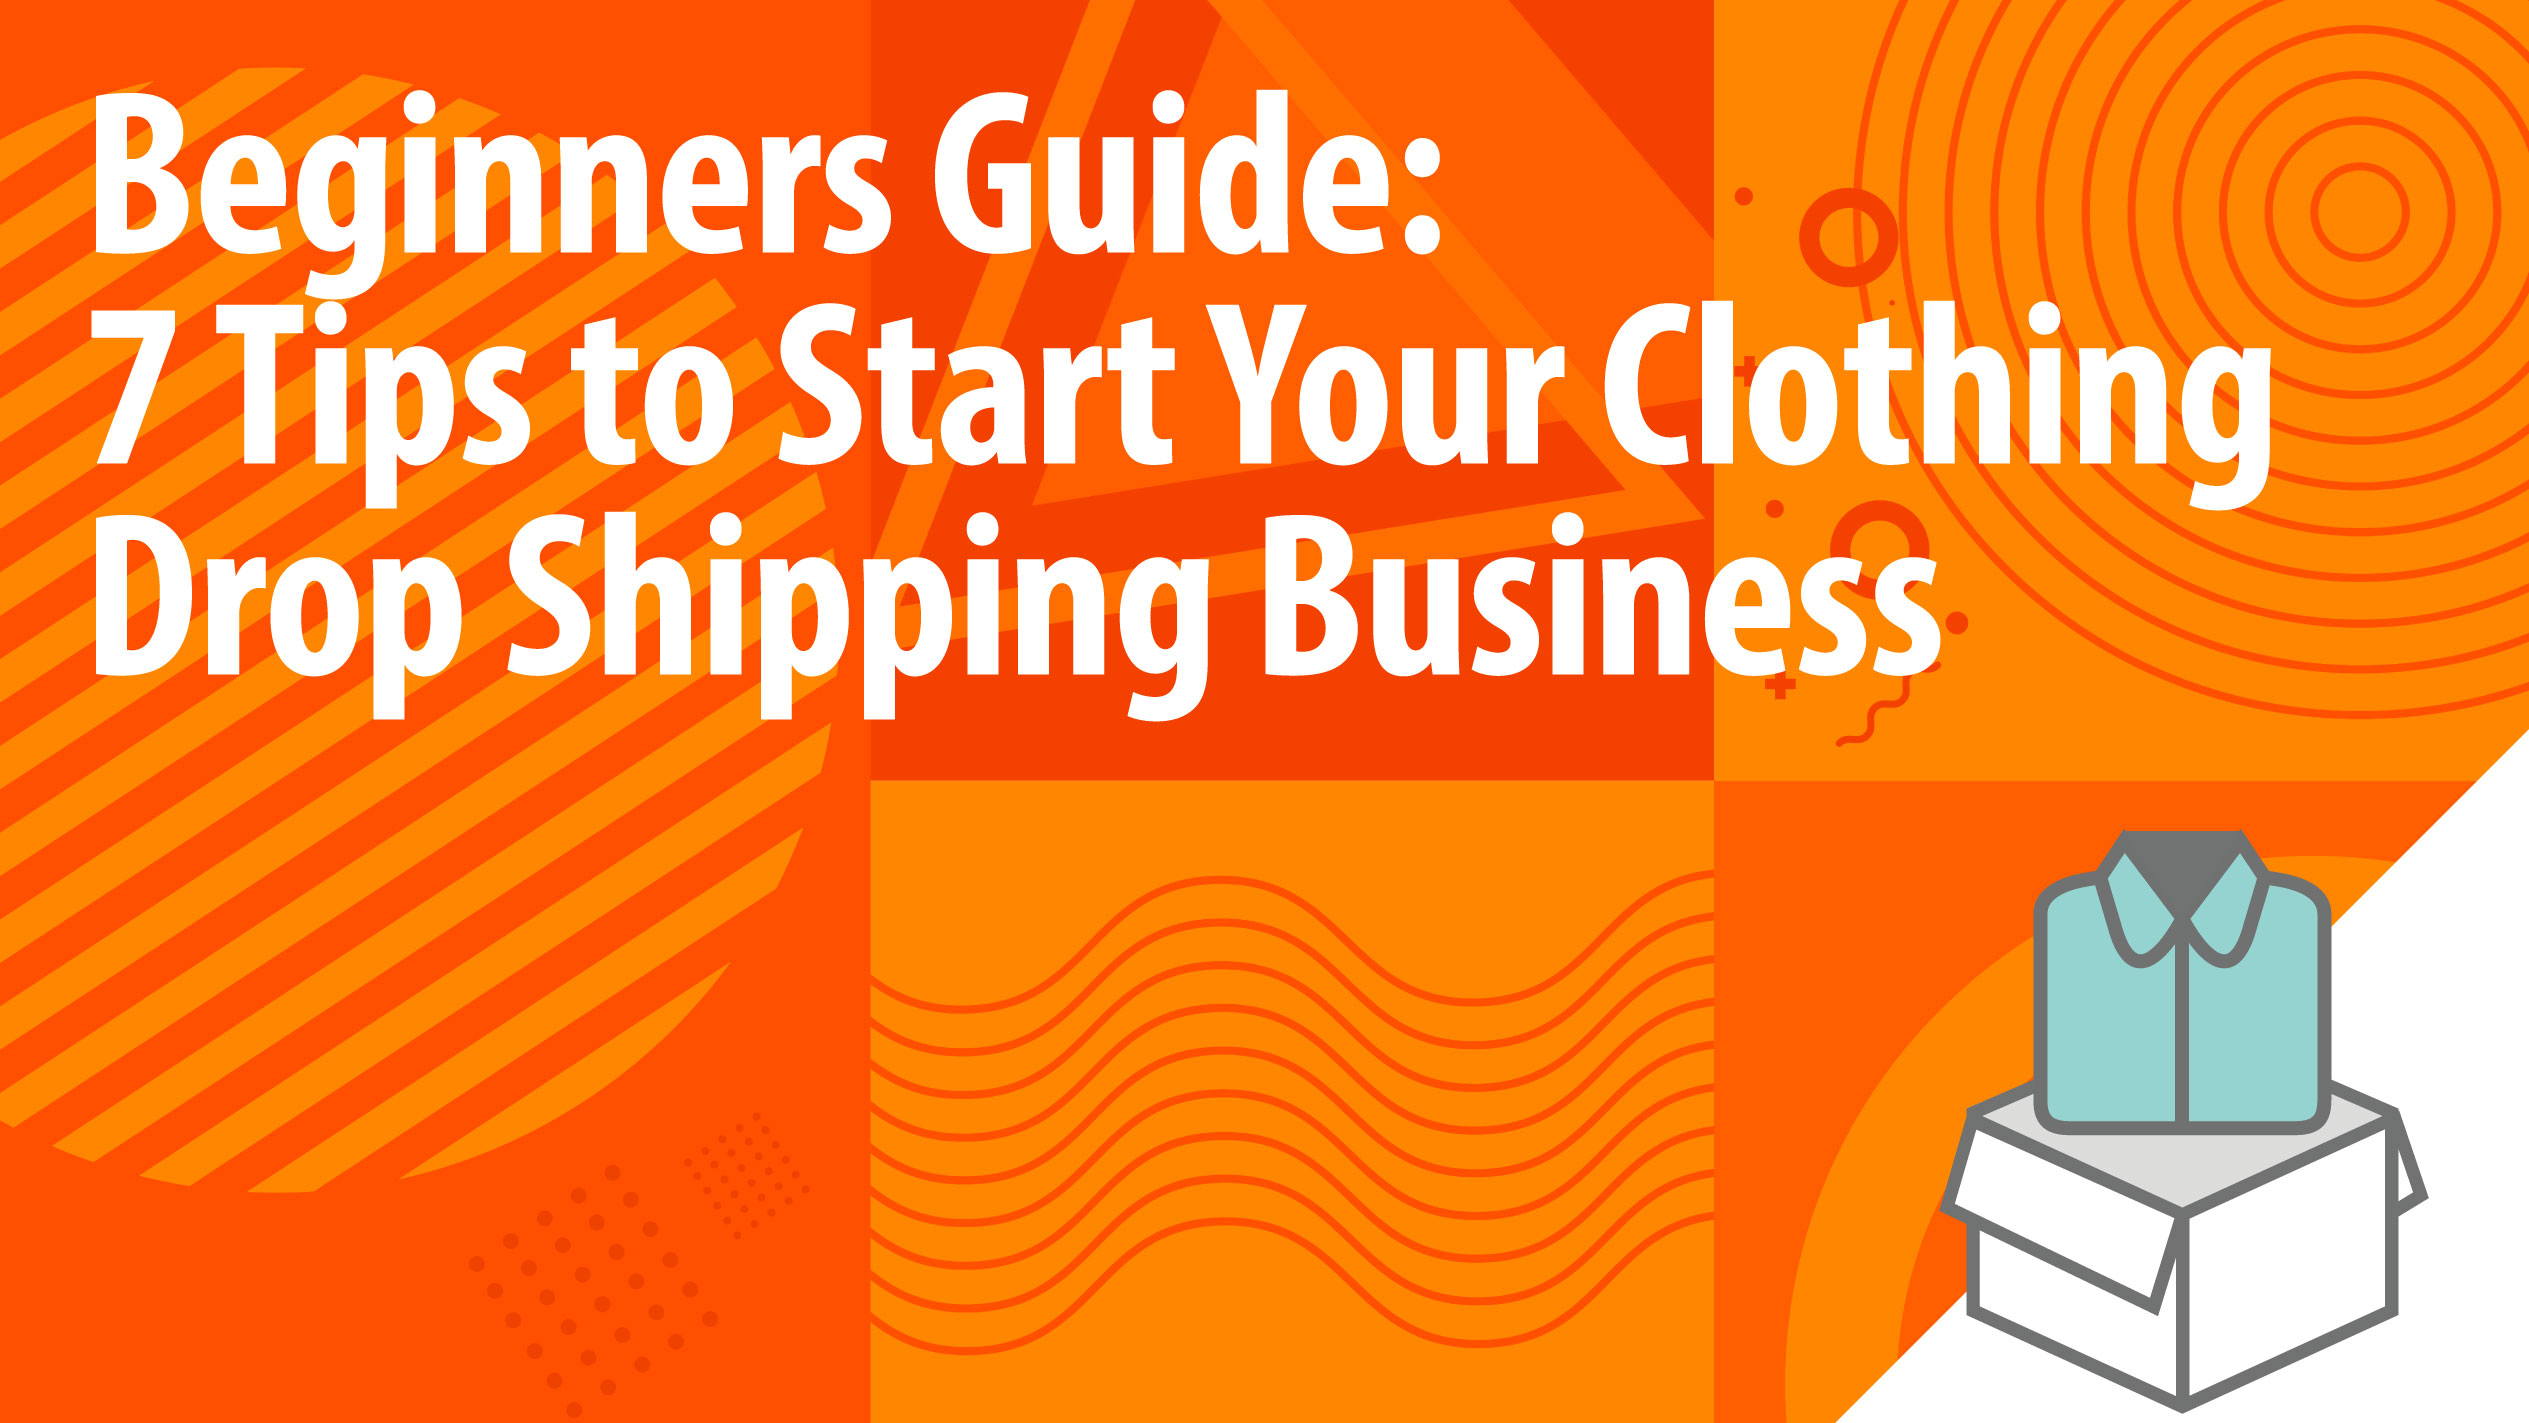 Beginners Guide: 7 Tips to Start Your Clothing Drop Shipping Business